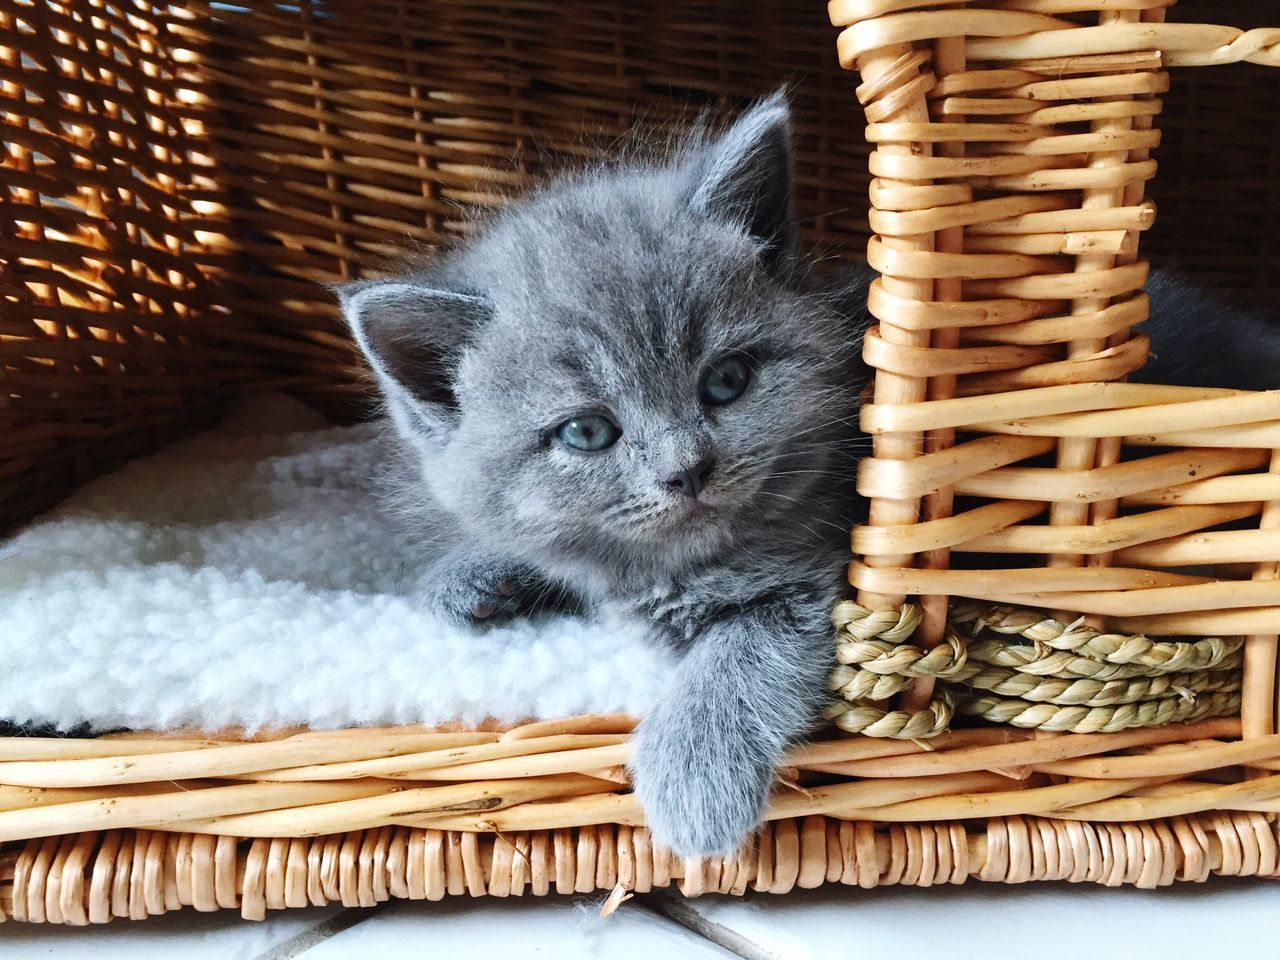 Domestic Cat Pets Mammal Basket Animal Themes Cats Of EyeEm Catlovers Cat British Shorthair (null)Relaxation (null)No People Portrait One Animal Cats Katze Sweet Lovely Domestic Animals (null)Indoors  Liebe Babycat